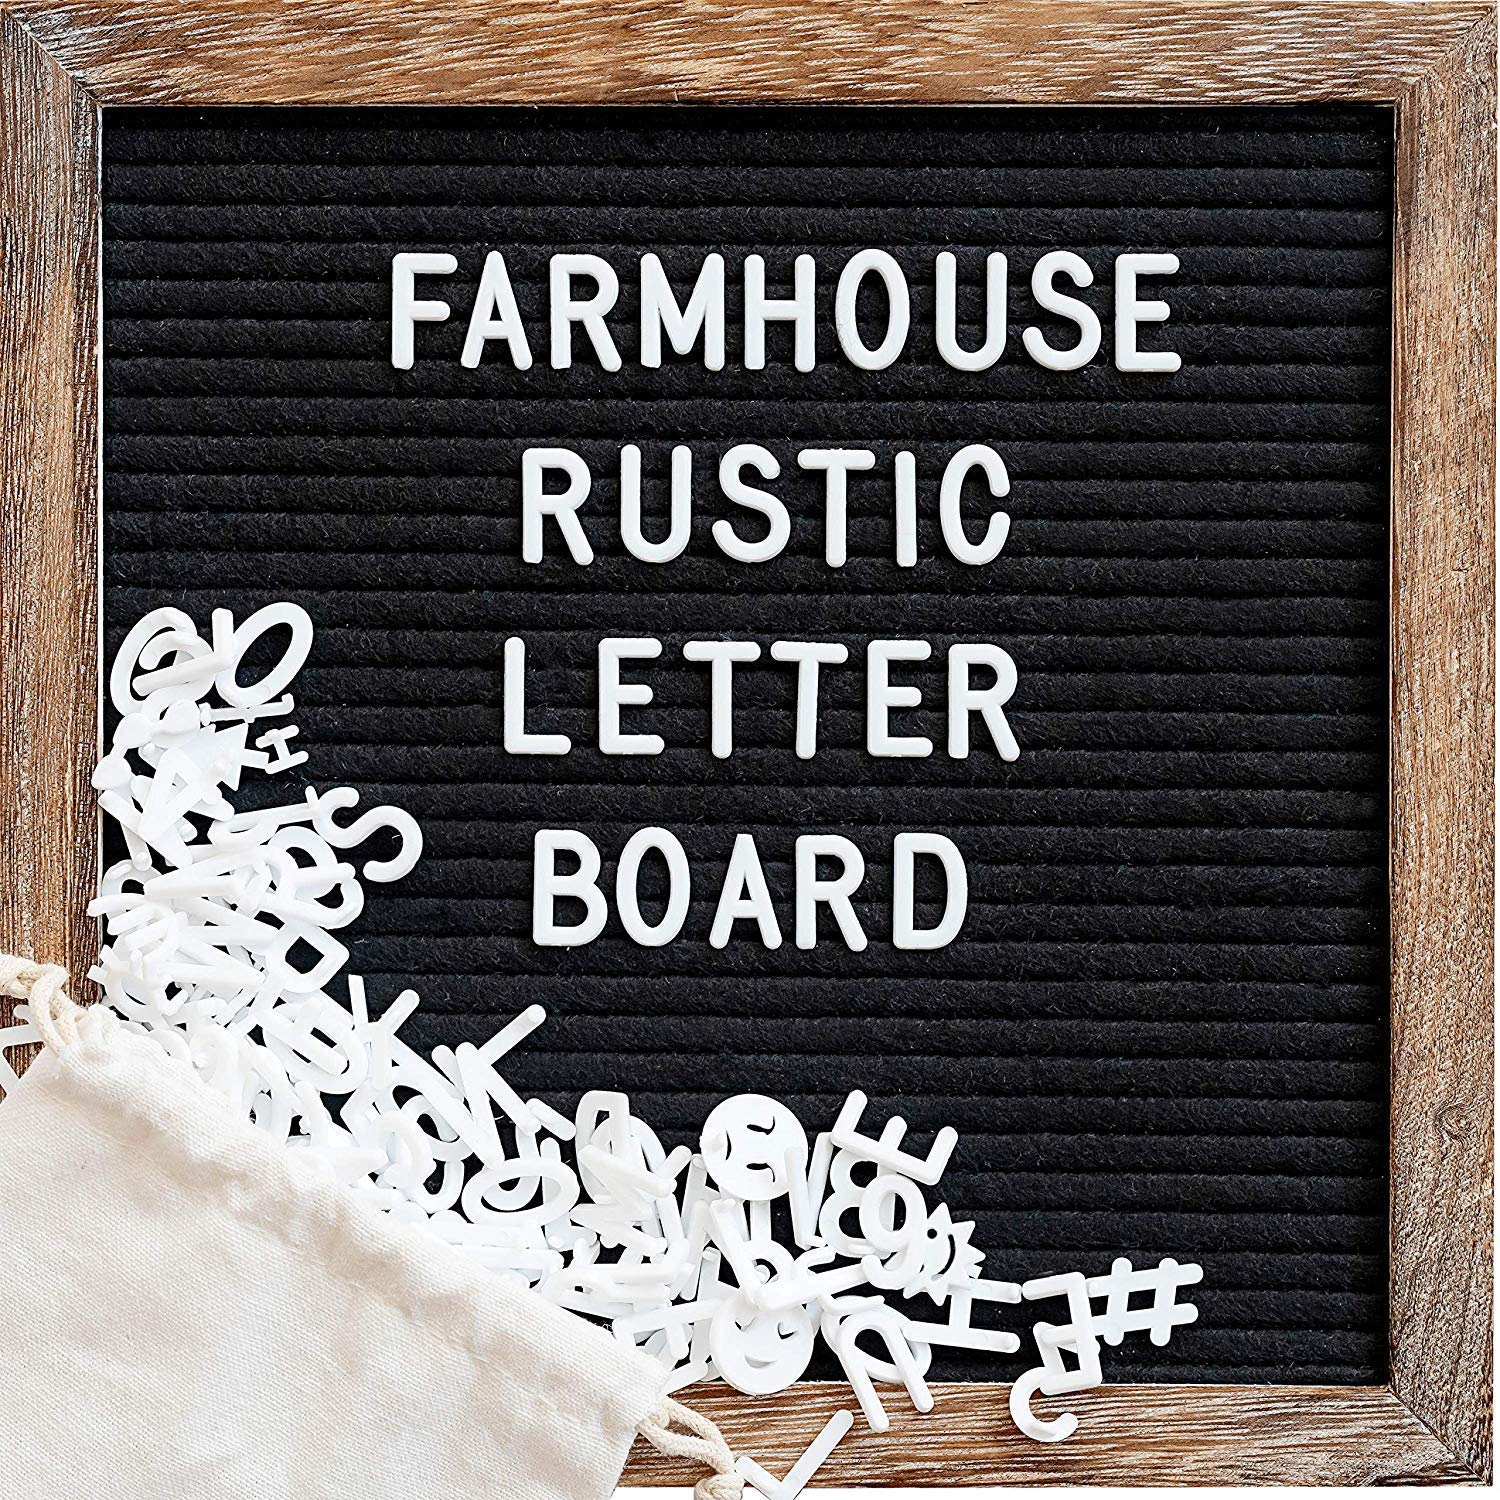 Felt Letter Board with 10x10 Inch Rustic Wood Frame, Script Words, Precut Letters, Picture Hangers, Farmhouse Wall Decor, Shabby Chic Vintage Decor, Black Felt Message Board